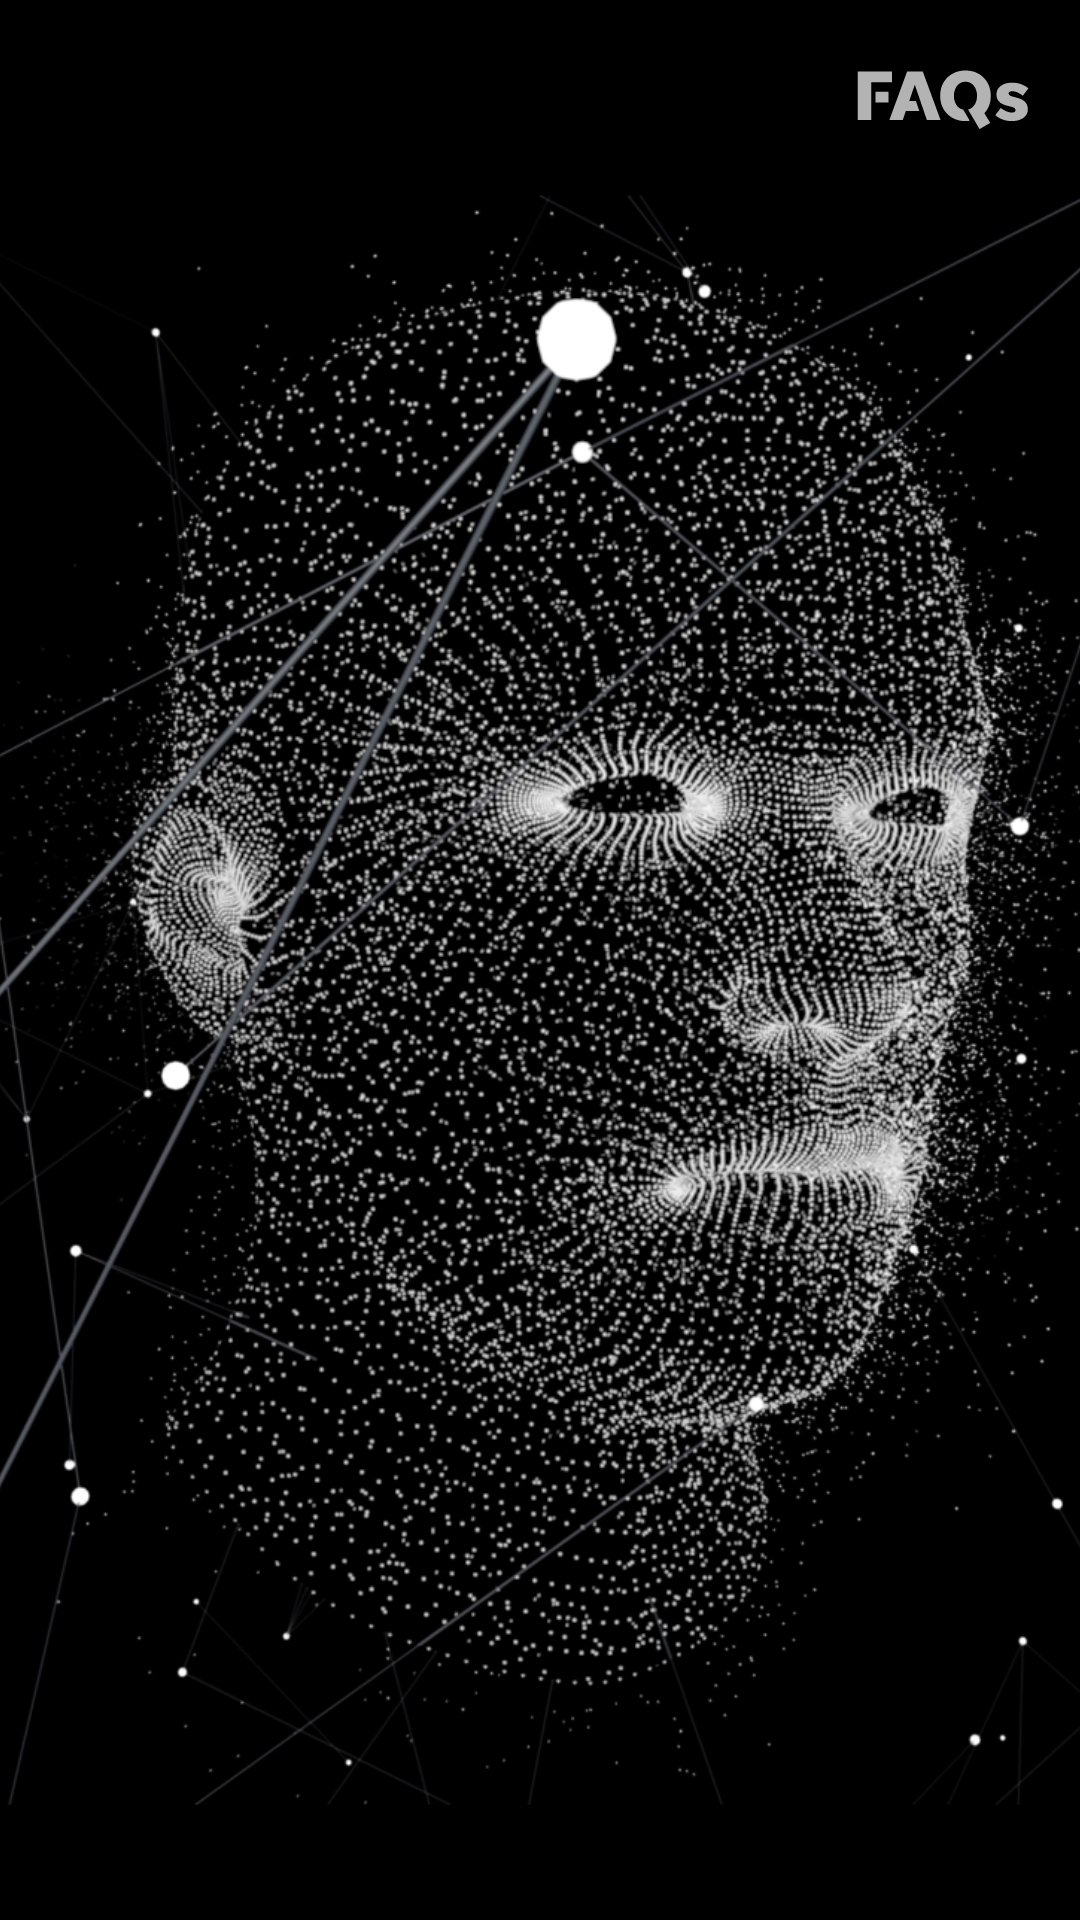 As police embrace new facial recognition technology, many fear false matches could lead to wrongful arrests. https://t.co/tcYa3miFgQ